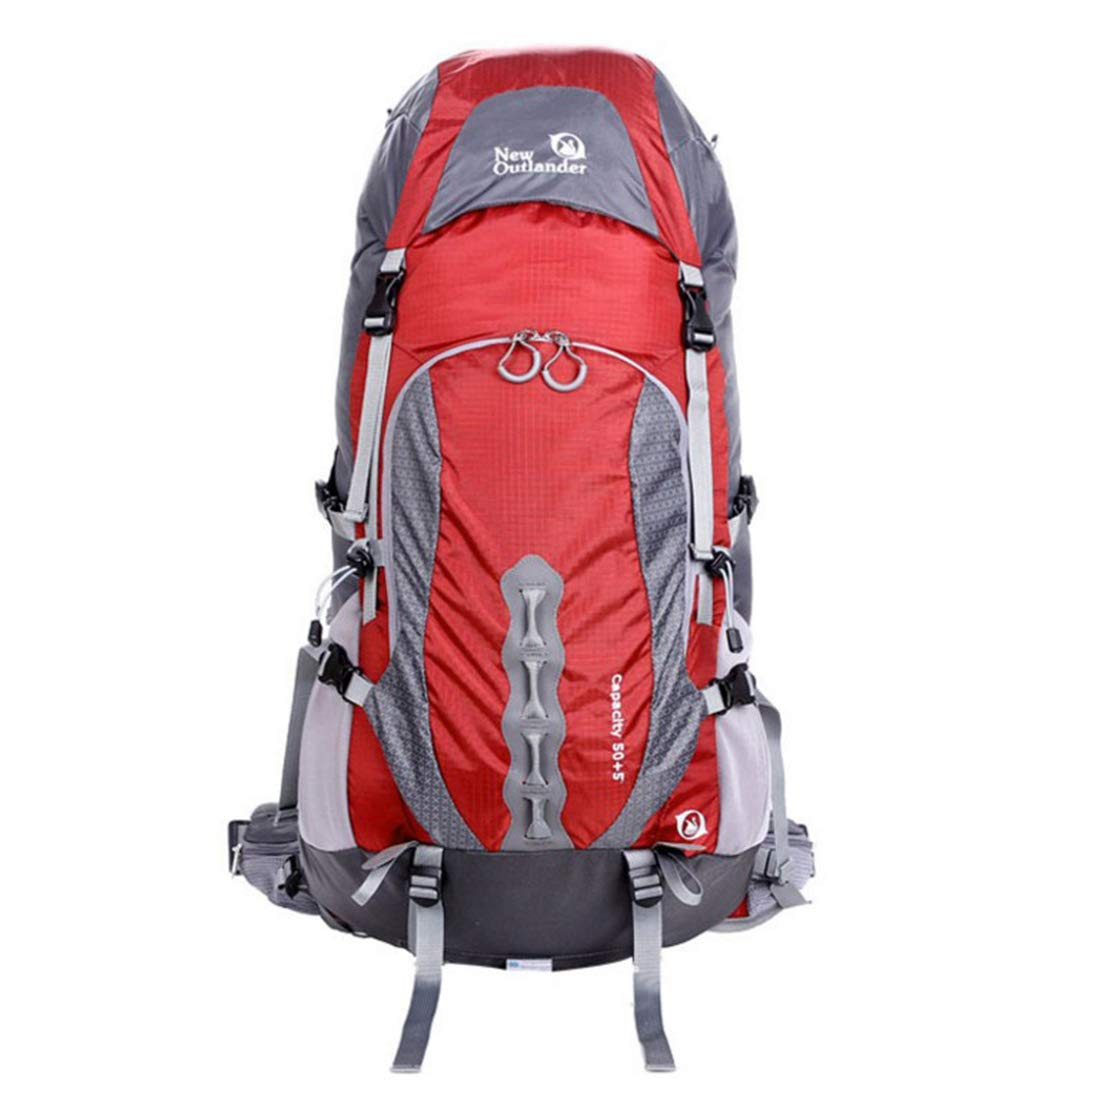 CeSuoLBD 屋外スポーツ大容量防水登山バッグ (Color : レッド)  レッド B07NP994SY